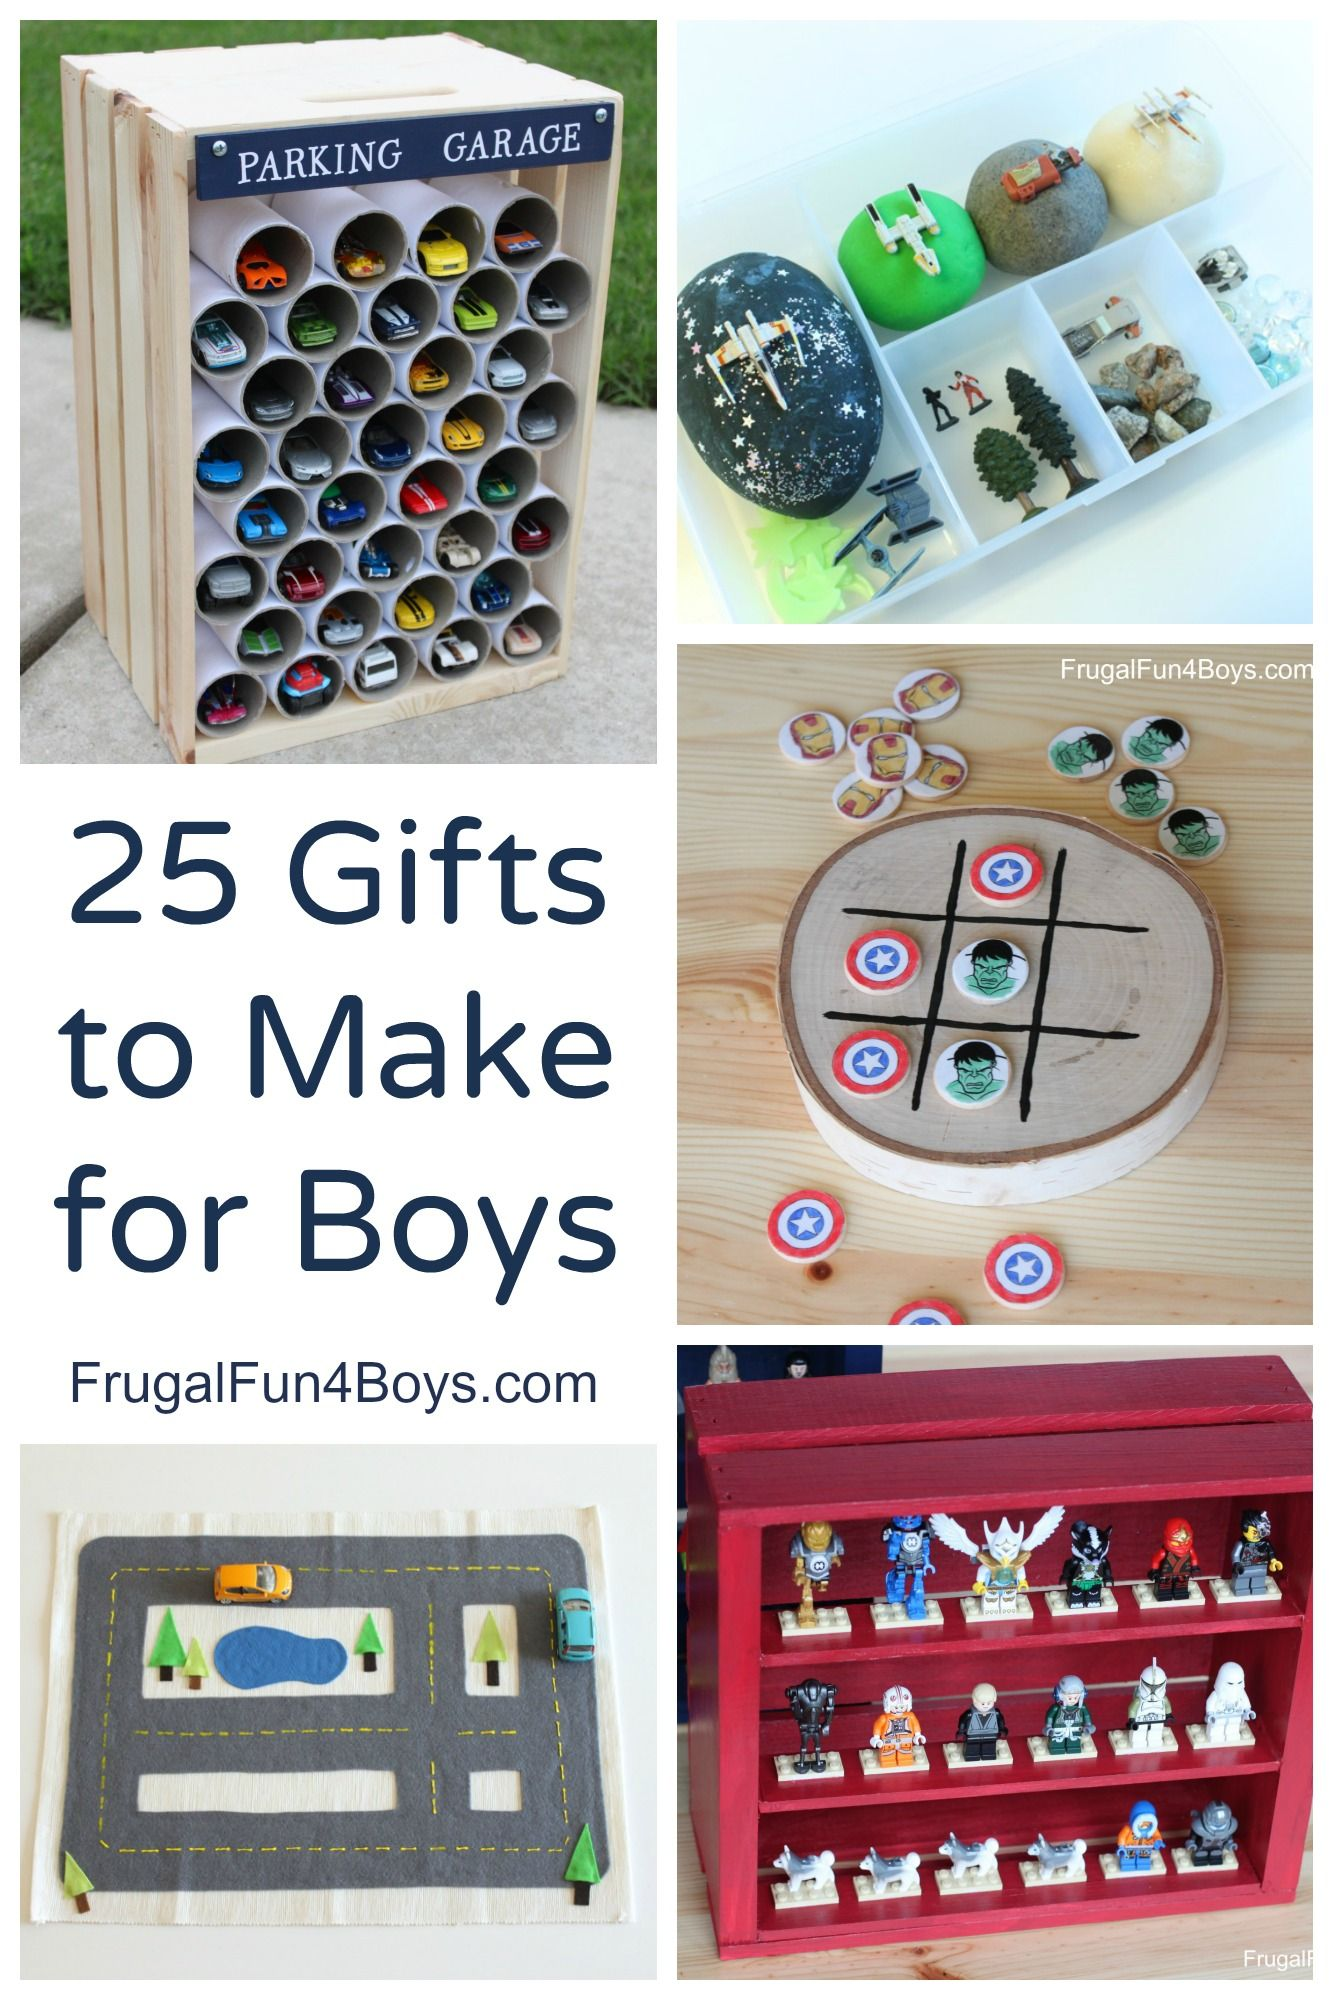 25 more homemade gifts to make for boys homemade boys and gift 25 gifts to make for boys homemade toys that boys will go for solutioingenieria Gallery